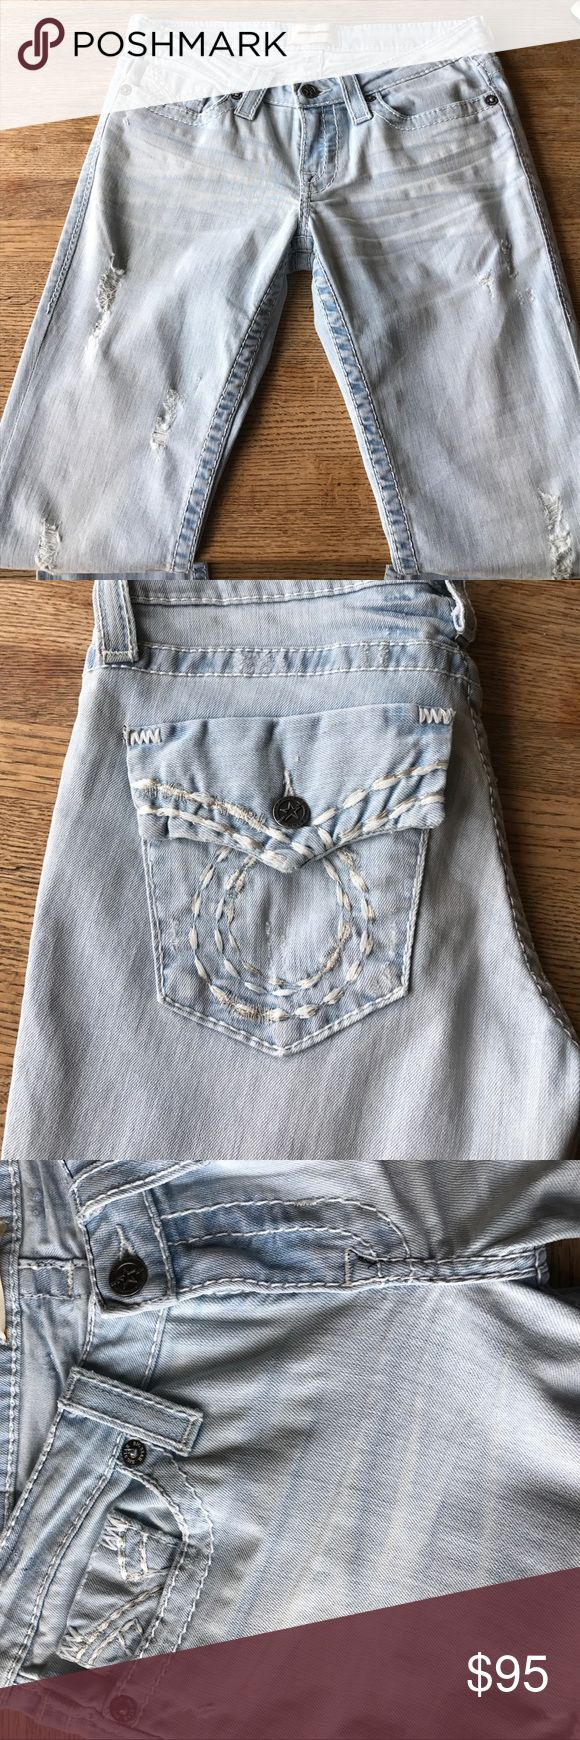 """New Big Star Liv boot factory distressed 27R 5/6 New without tags, never worn Big Star Liv boot jeans. With stretch. Size 27R (5/6 converted.) regular length. Factory distressed, holes, etc...15"""" across top of waist. Big Star Jeans Boot Cut"""